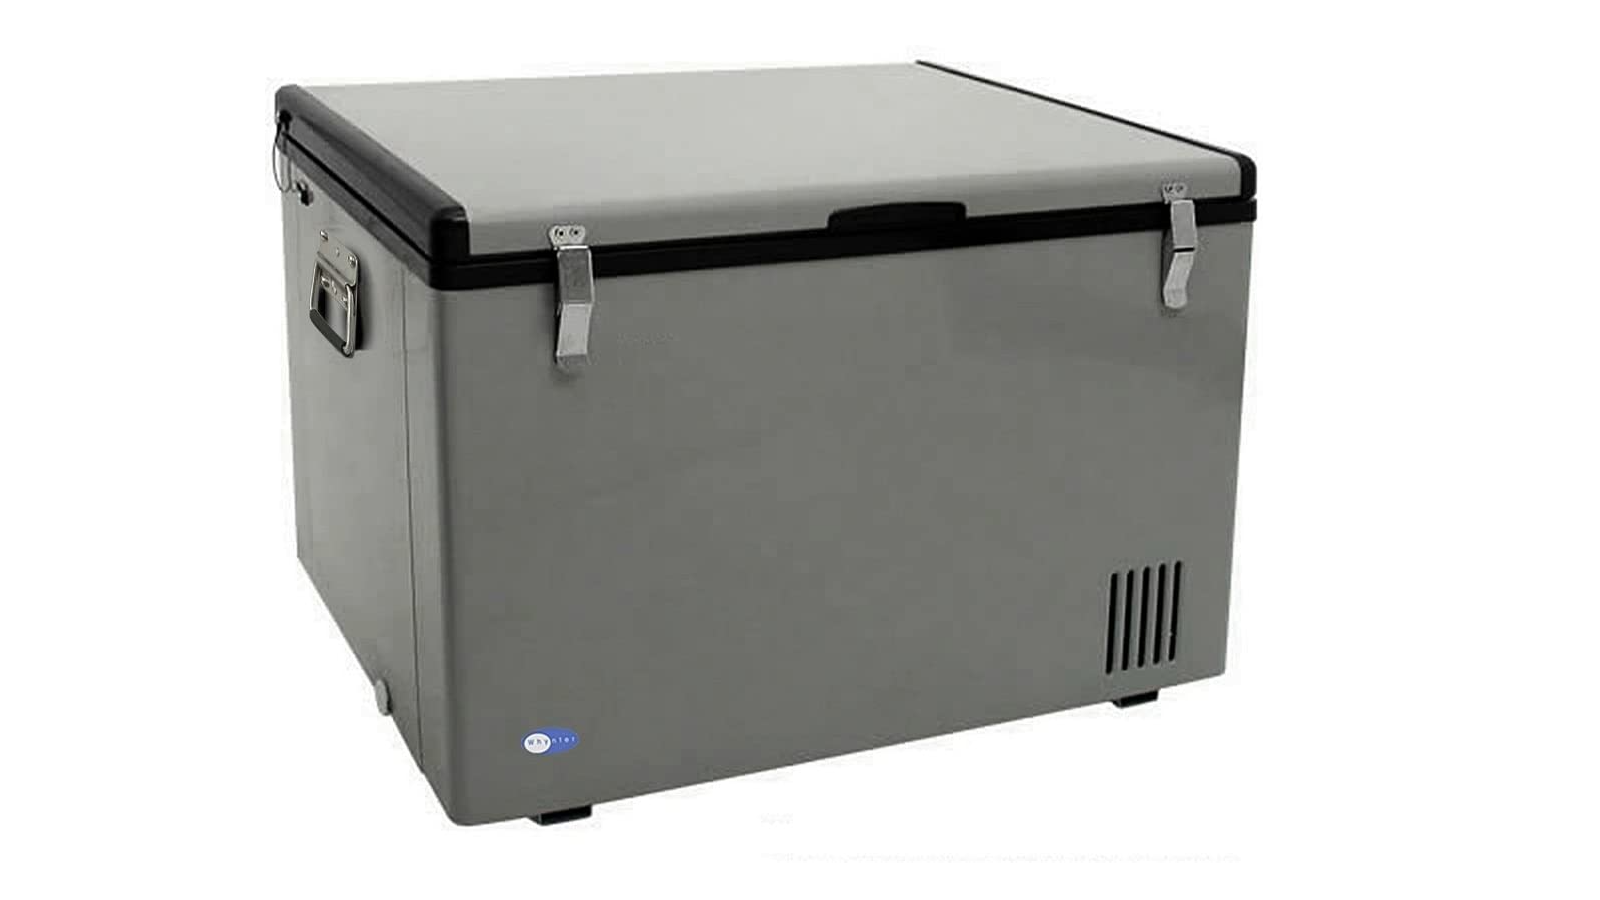 rectangular lighter gray chest freezer with black accents